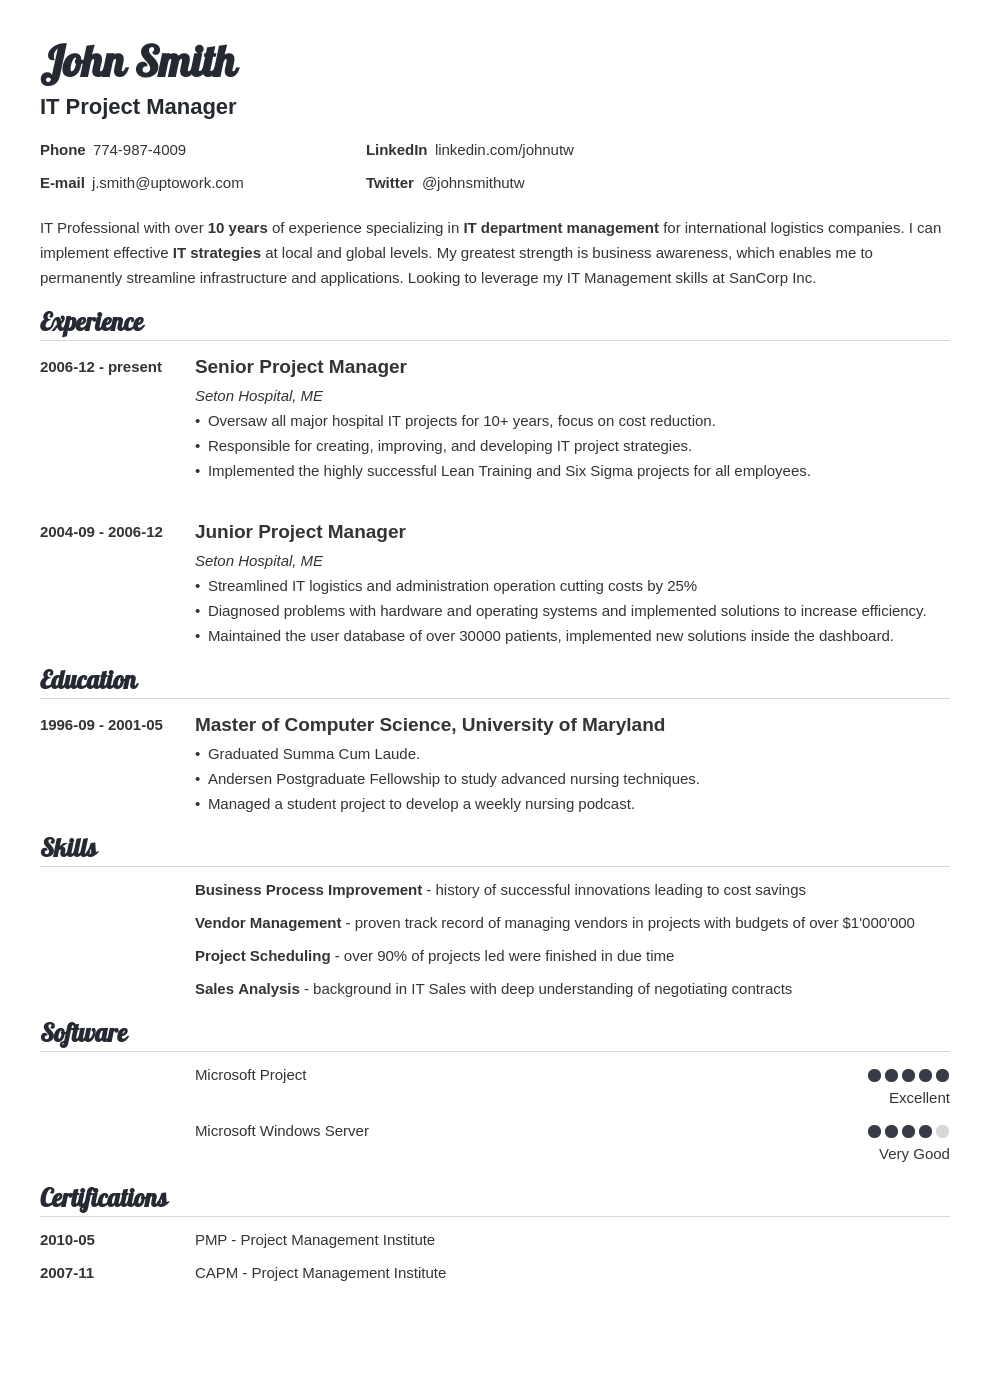 20 Resume Templates Download Create Your Resume in 5 Minutes!